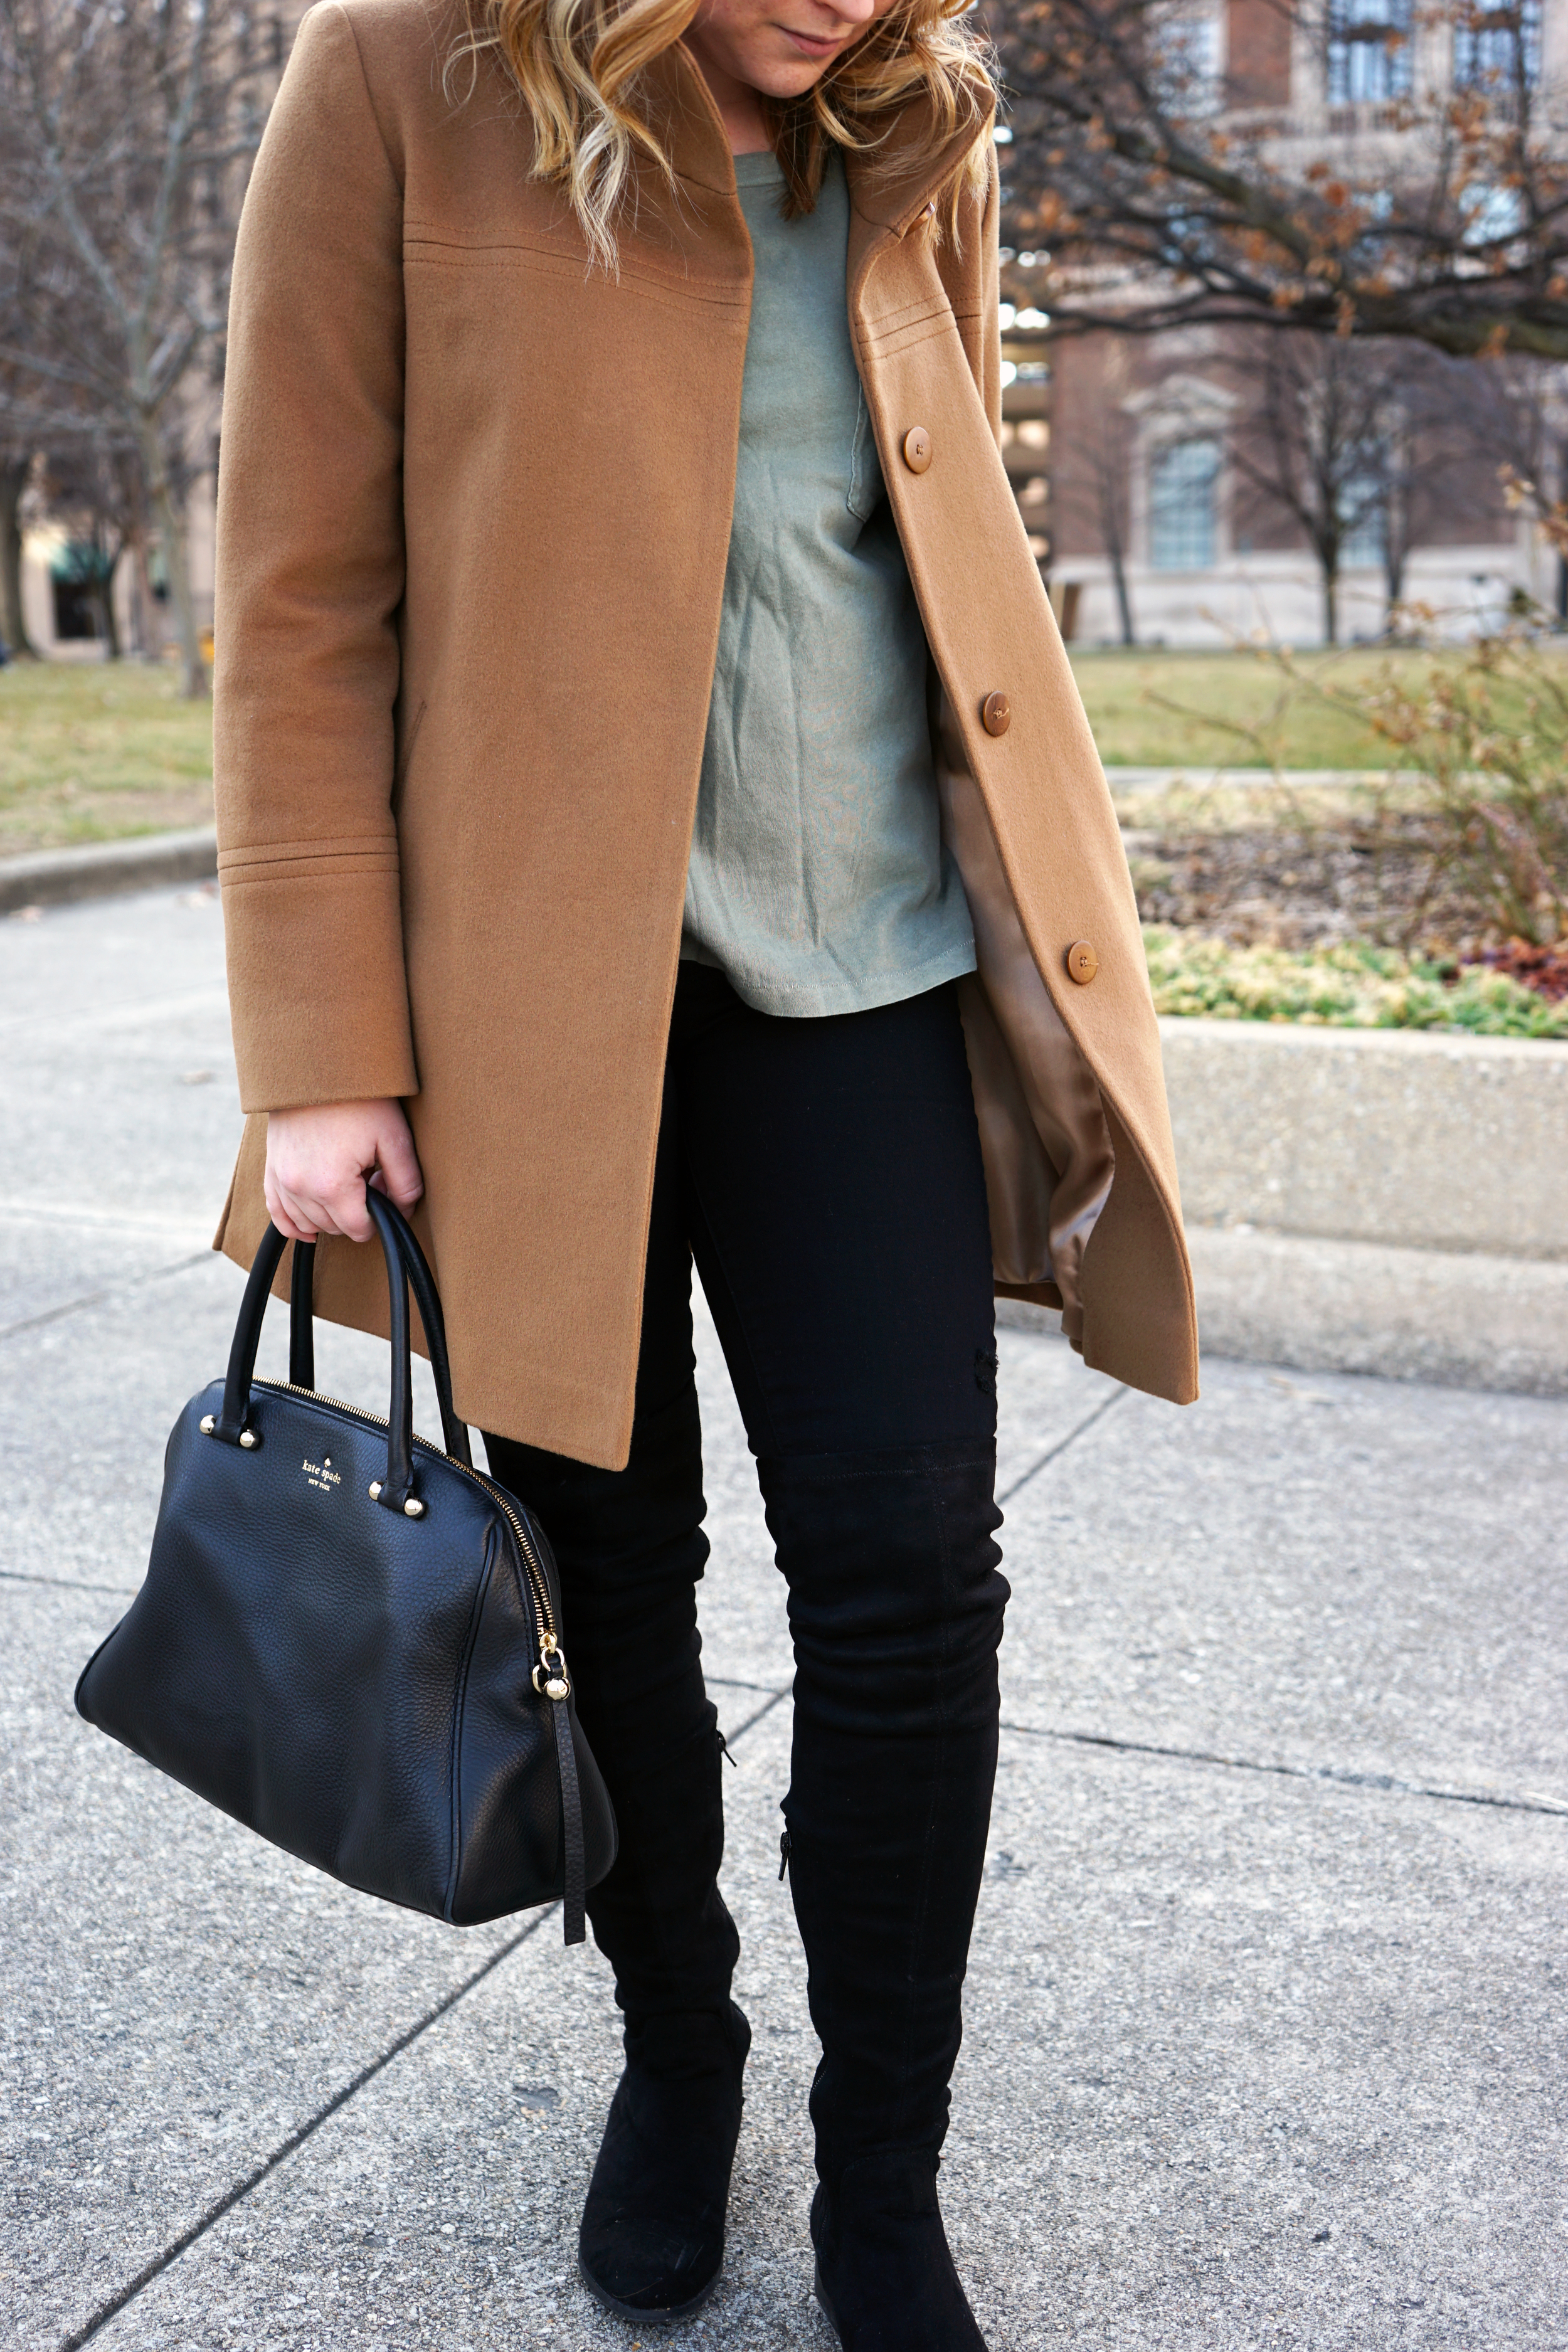 Fleurette Wool Stand Collar Car Coat, J Crew Garment Dyed Pocket Tee Shirt, Paige Denim Transcend Verdugo black skinny jeans, Forever 21 suede over the knee boots, Kate Spade Charles Street Brantley